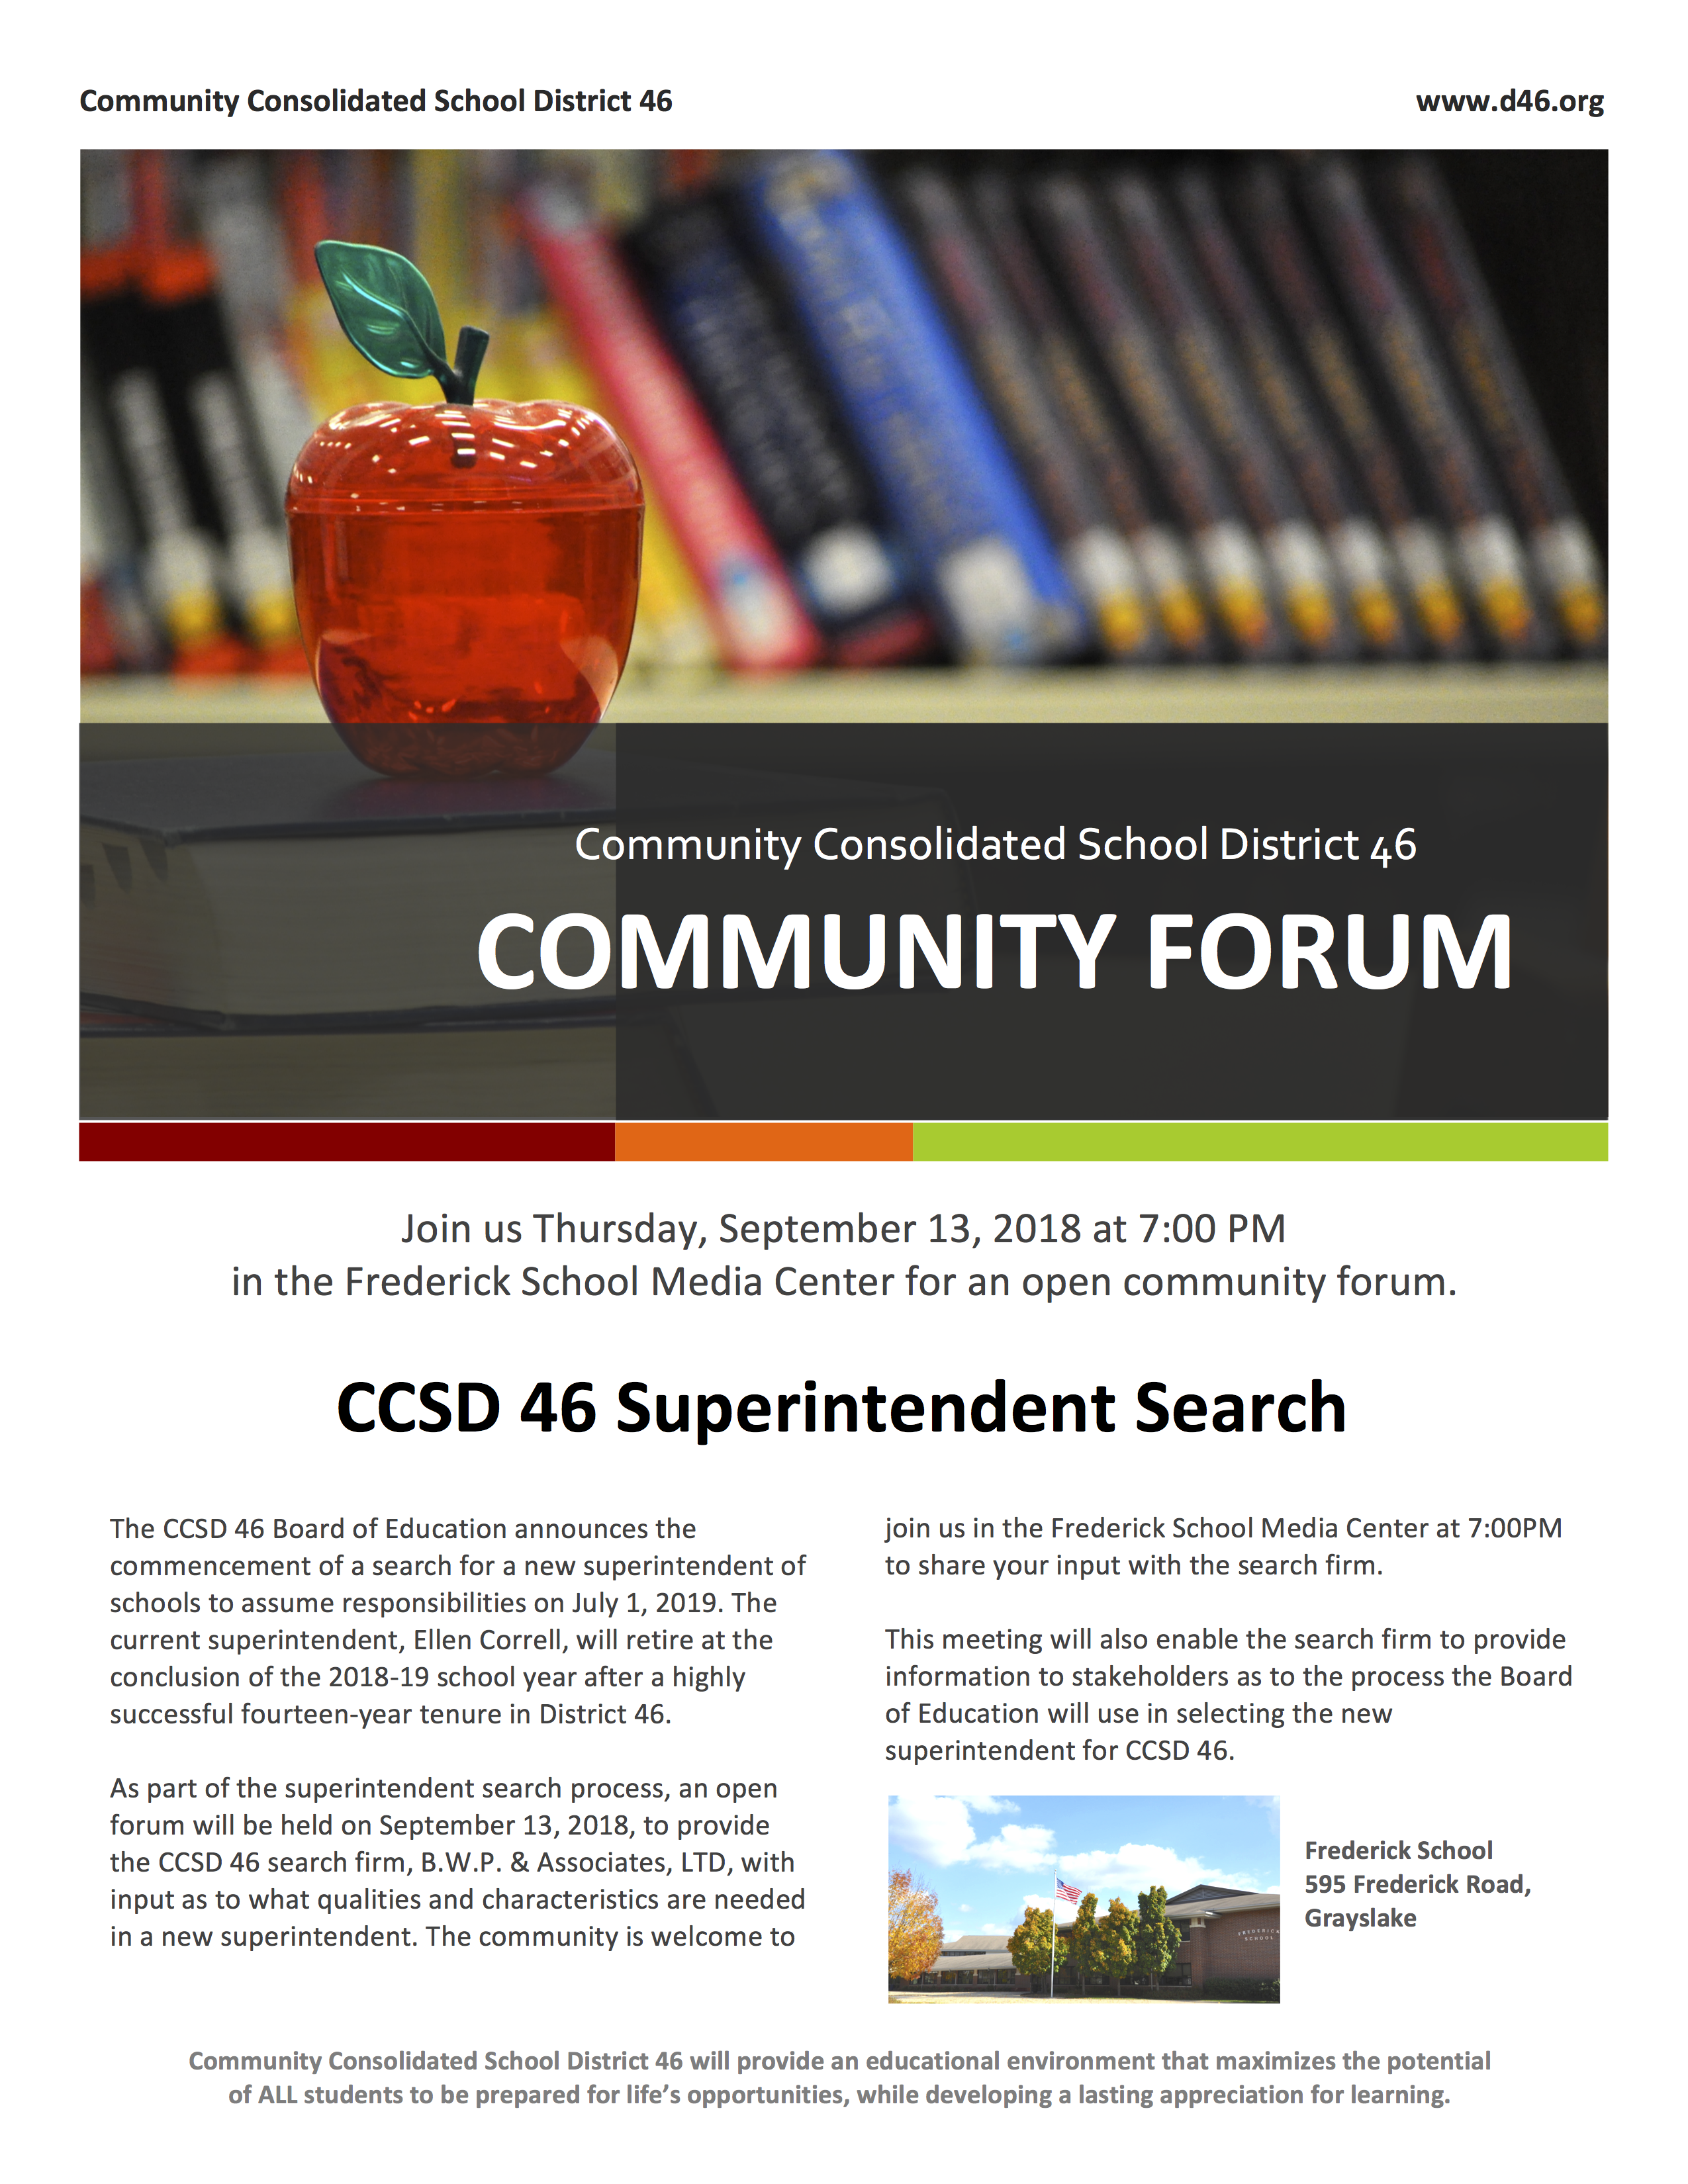 Superintendent Forum Flyer